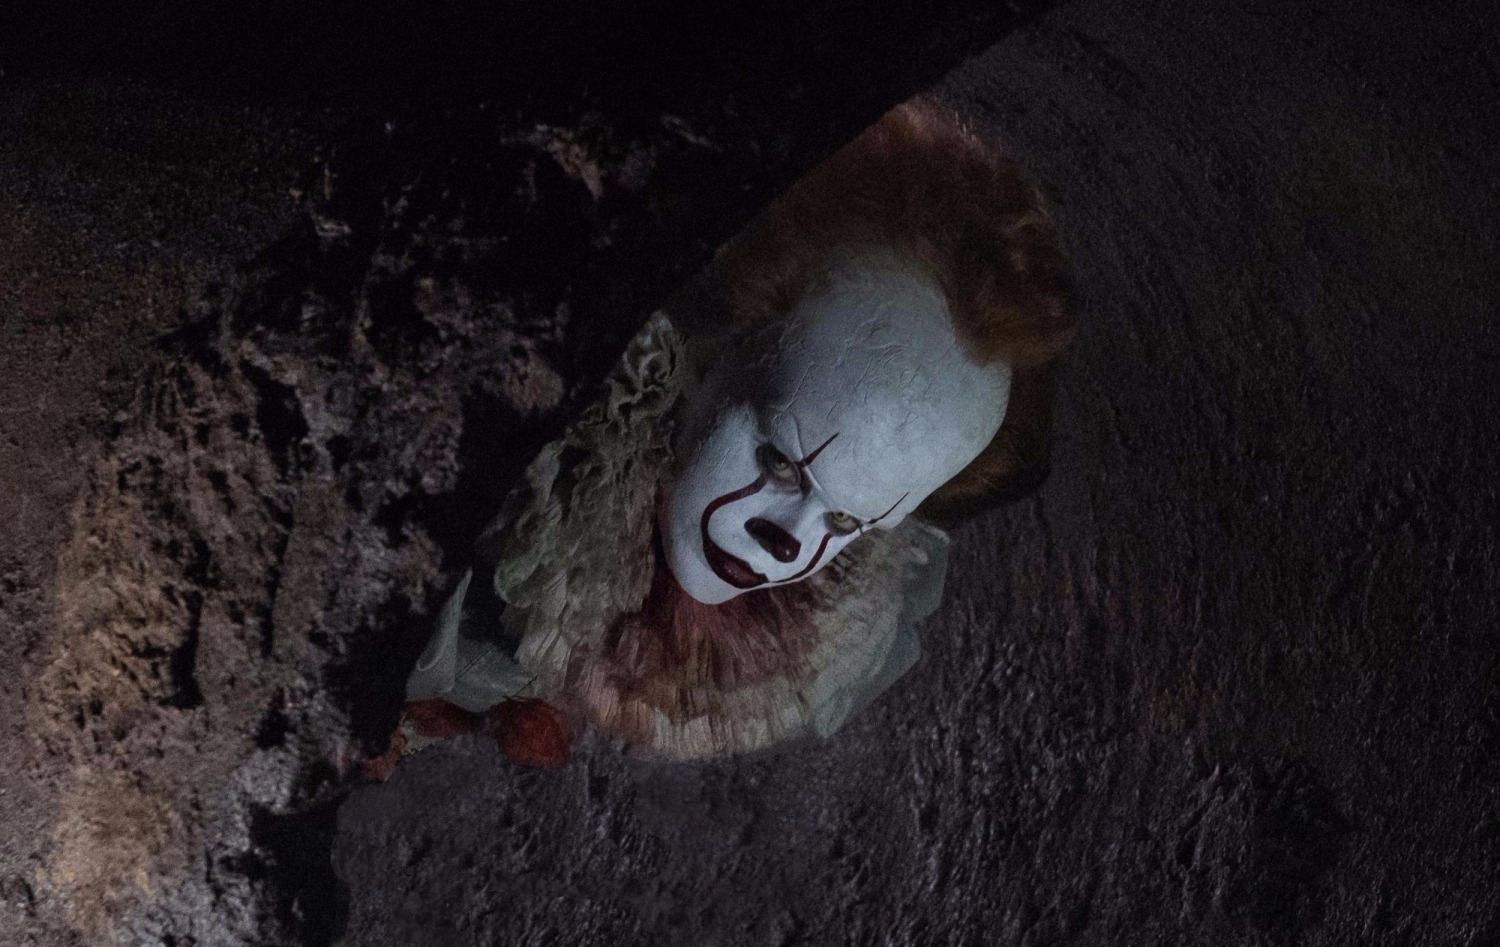 Filtran las primeras fotos de Pennywise en el set de It: Chapter Two